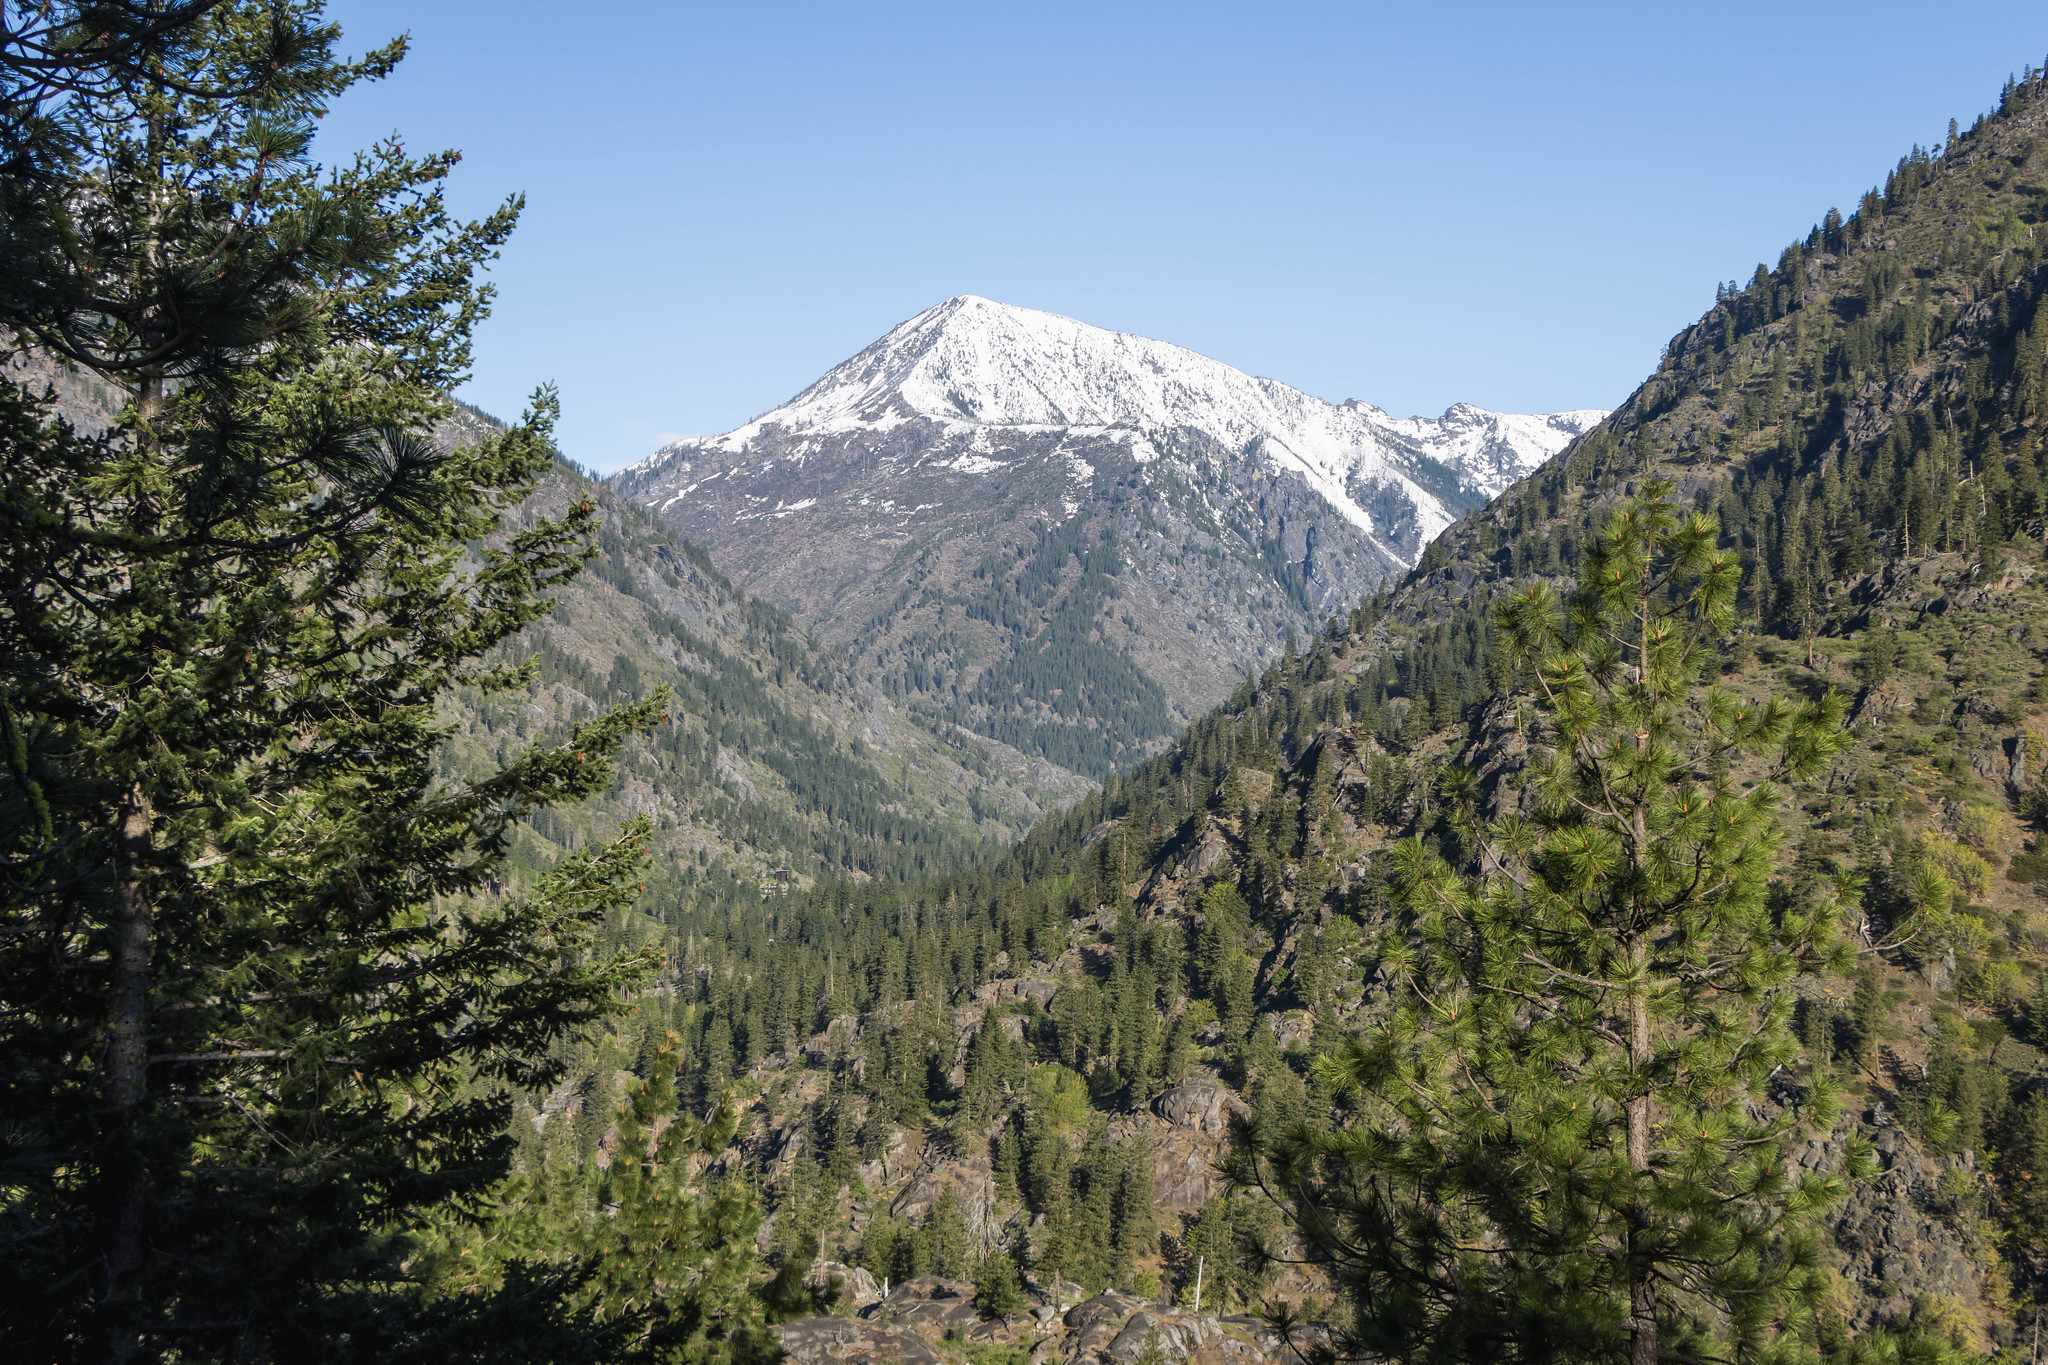 Trailside view of Icicle Canyon